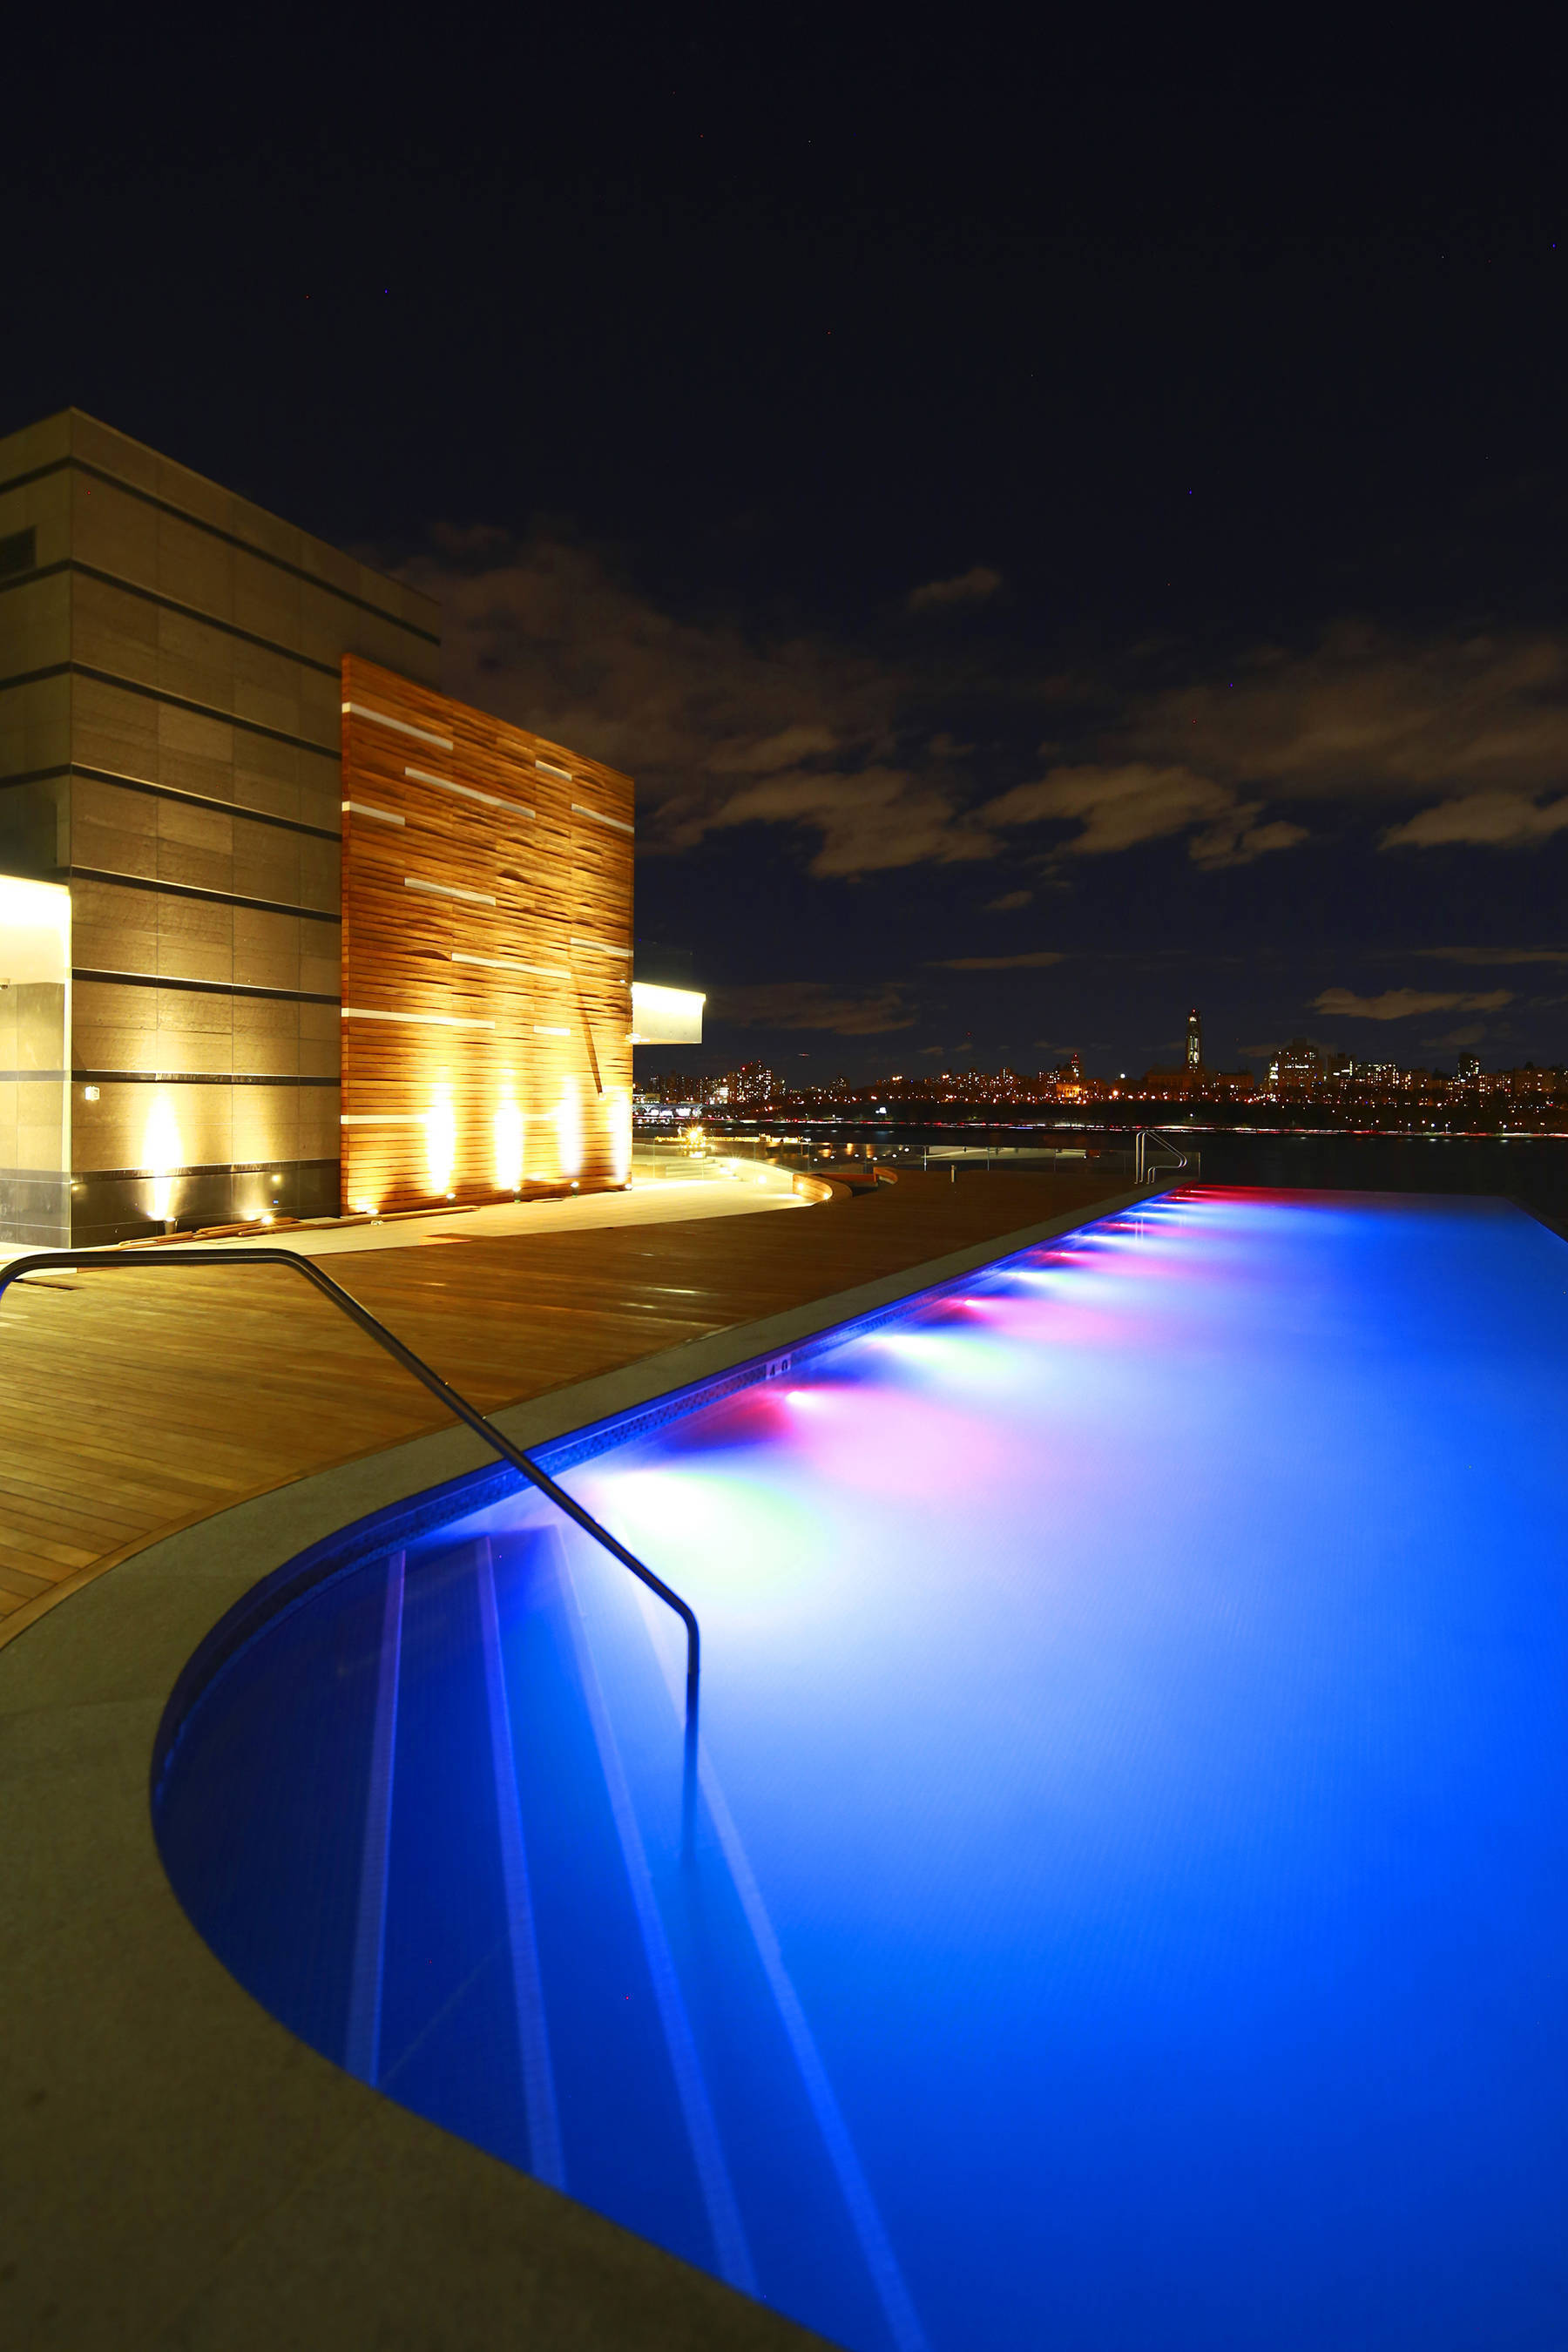 infinity pool night. Bacadfb82995dc487391_SoJoSpaClub-InfinityPool-Night.jpg Infinity Pool Night T